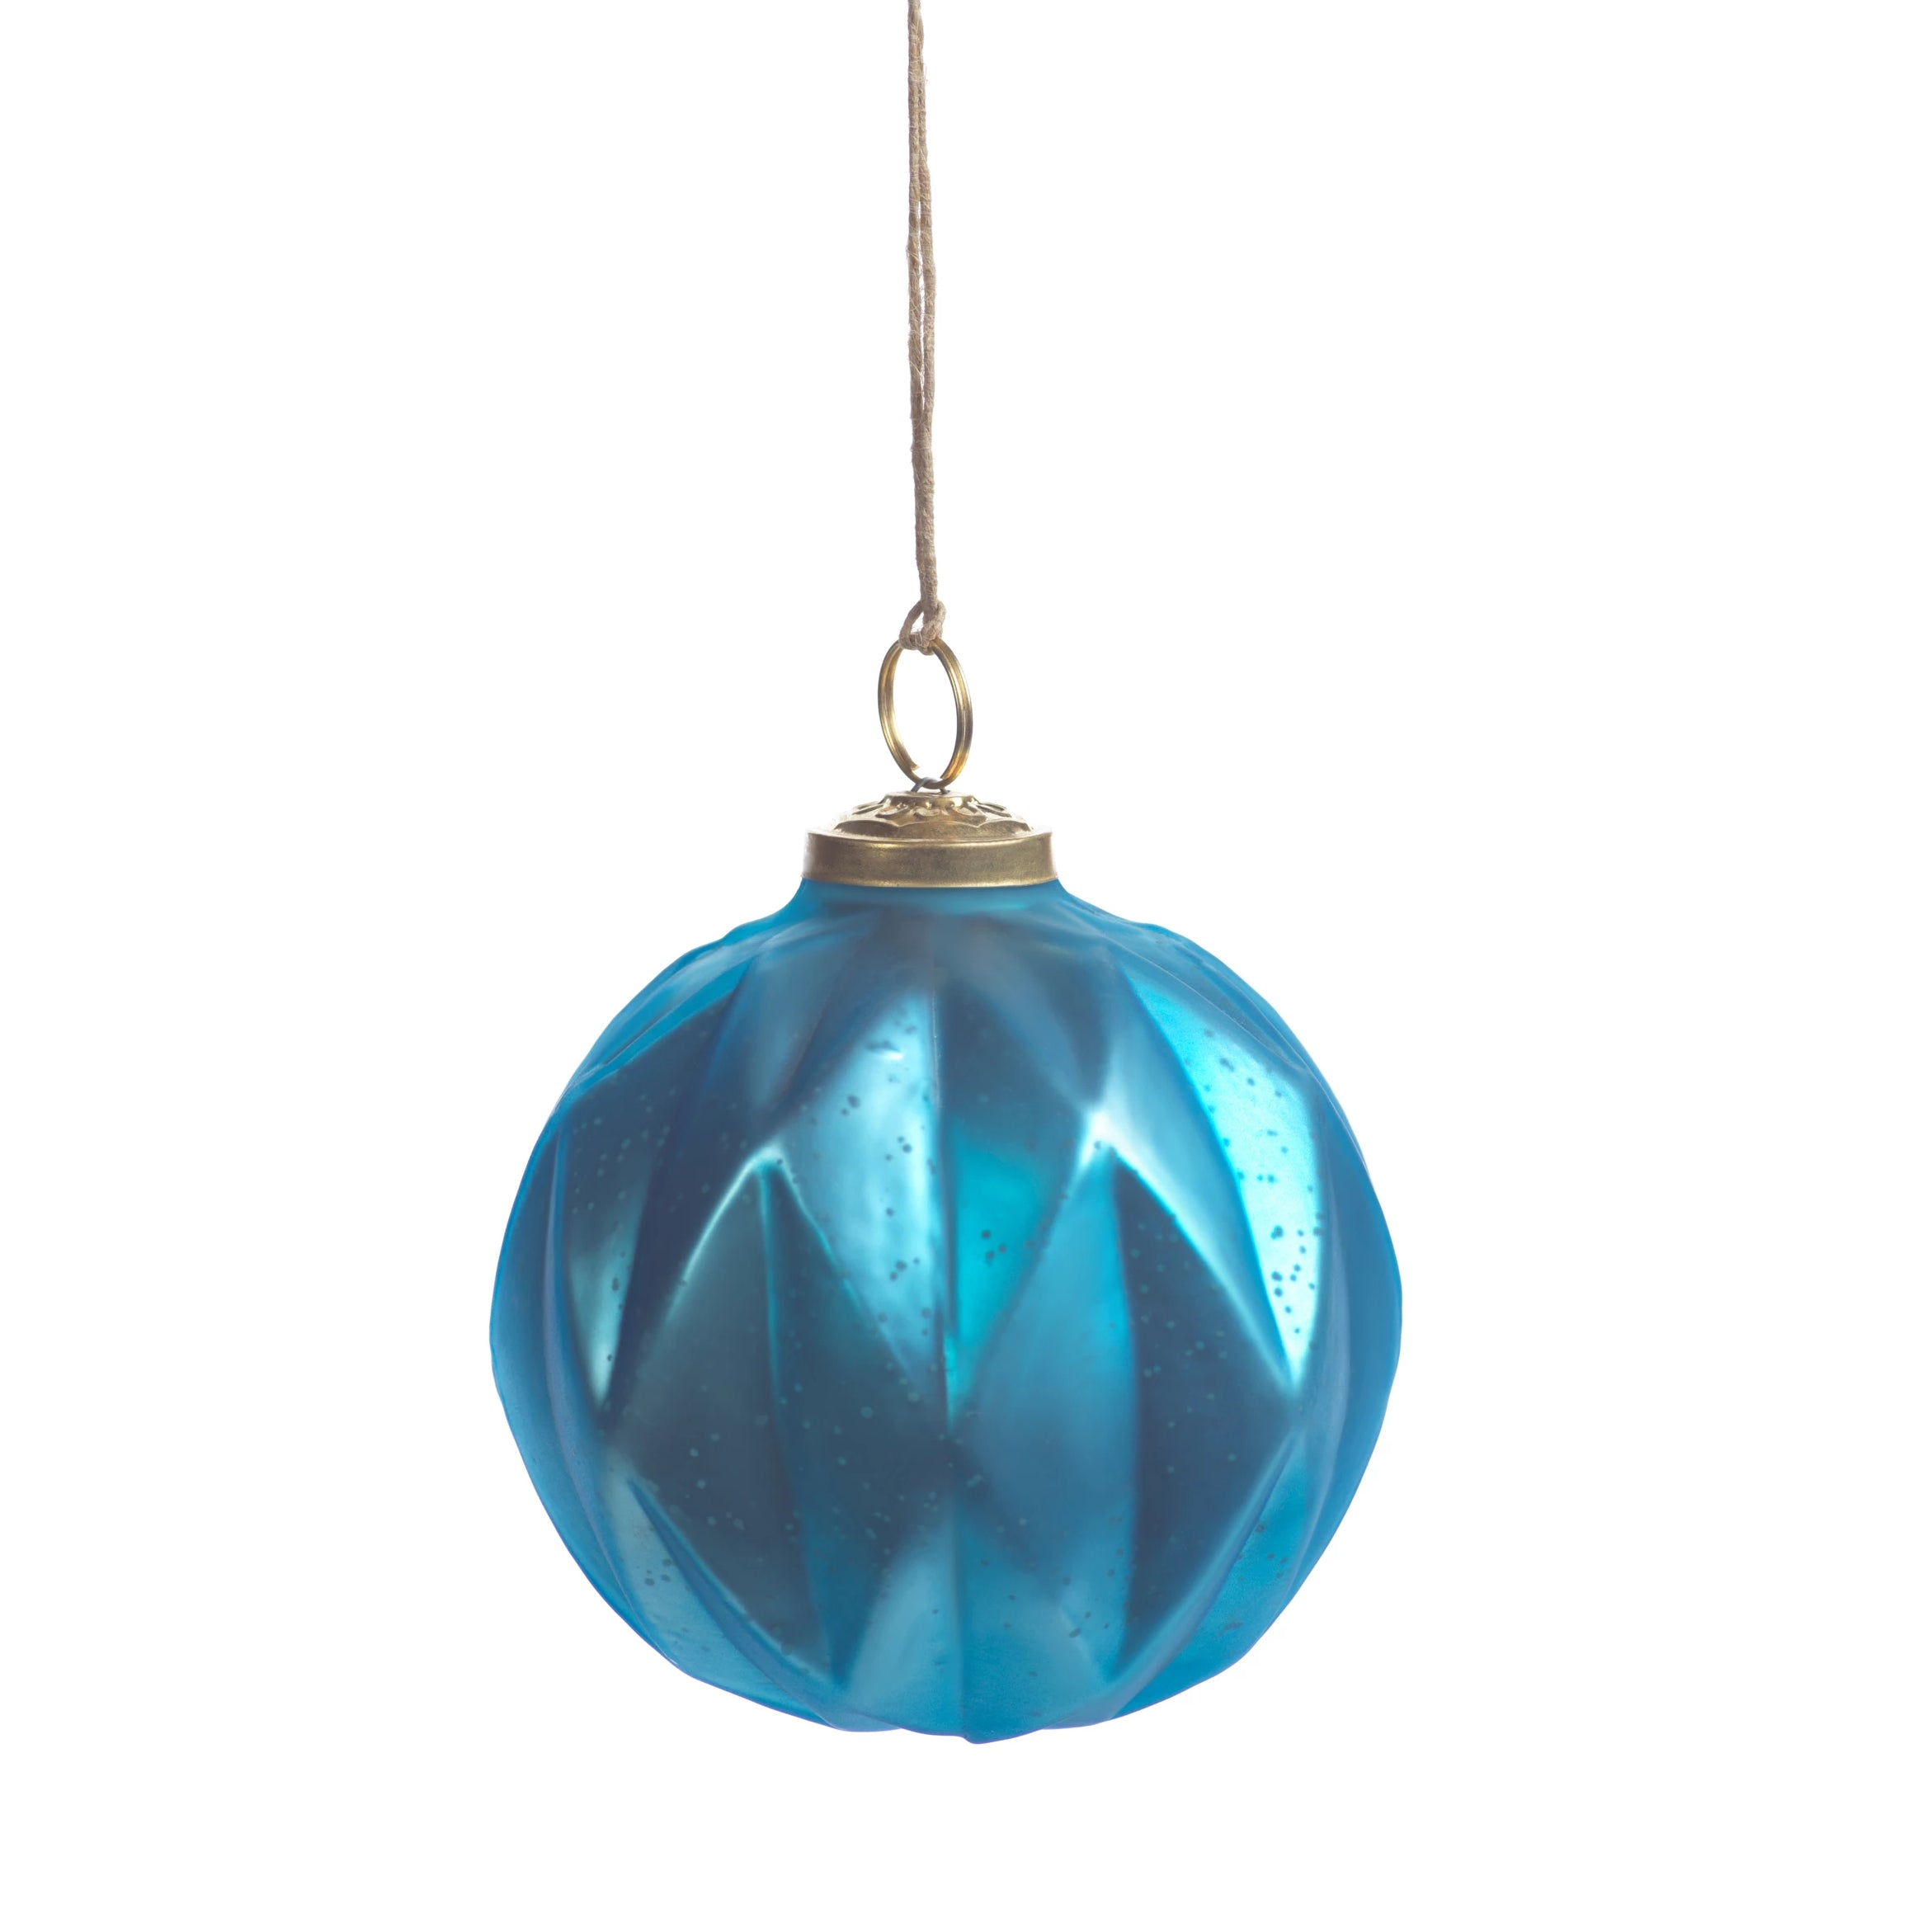 Faceted Glass Ornaments - Light Blue - CARLYLE AVENUE